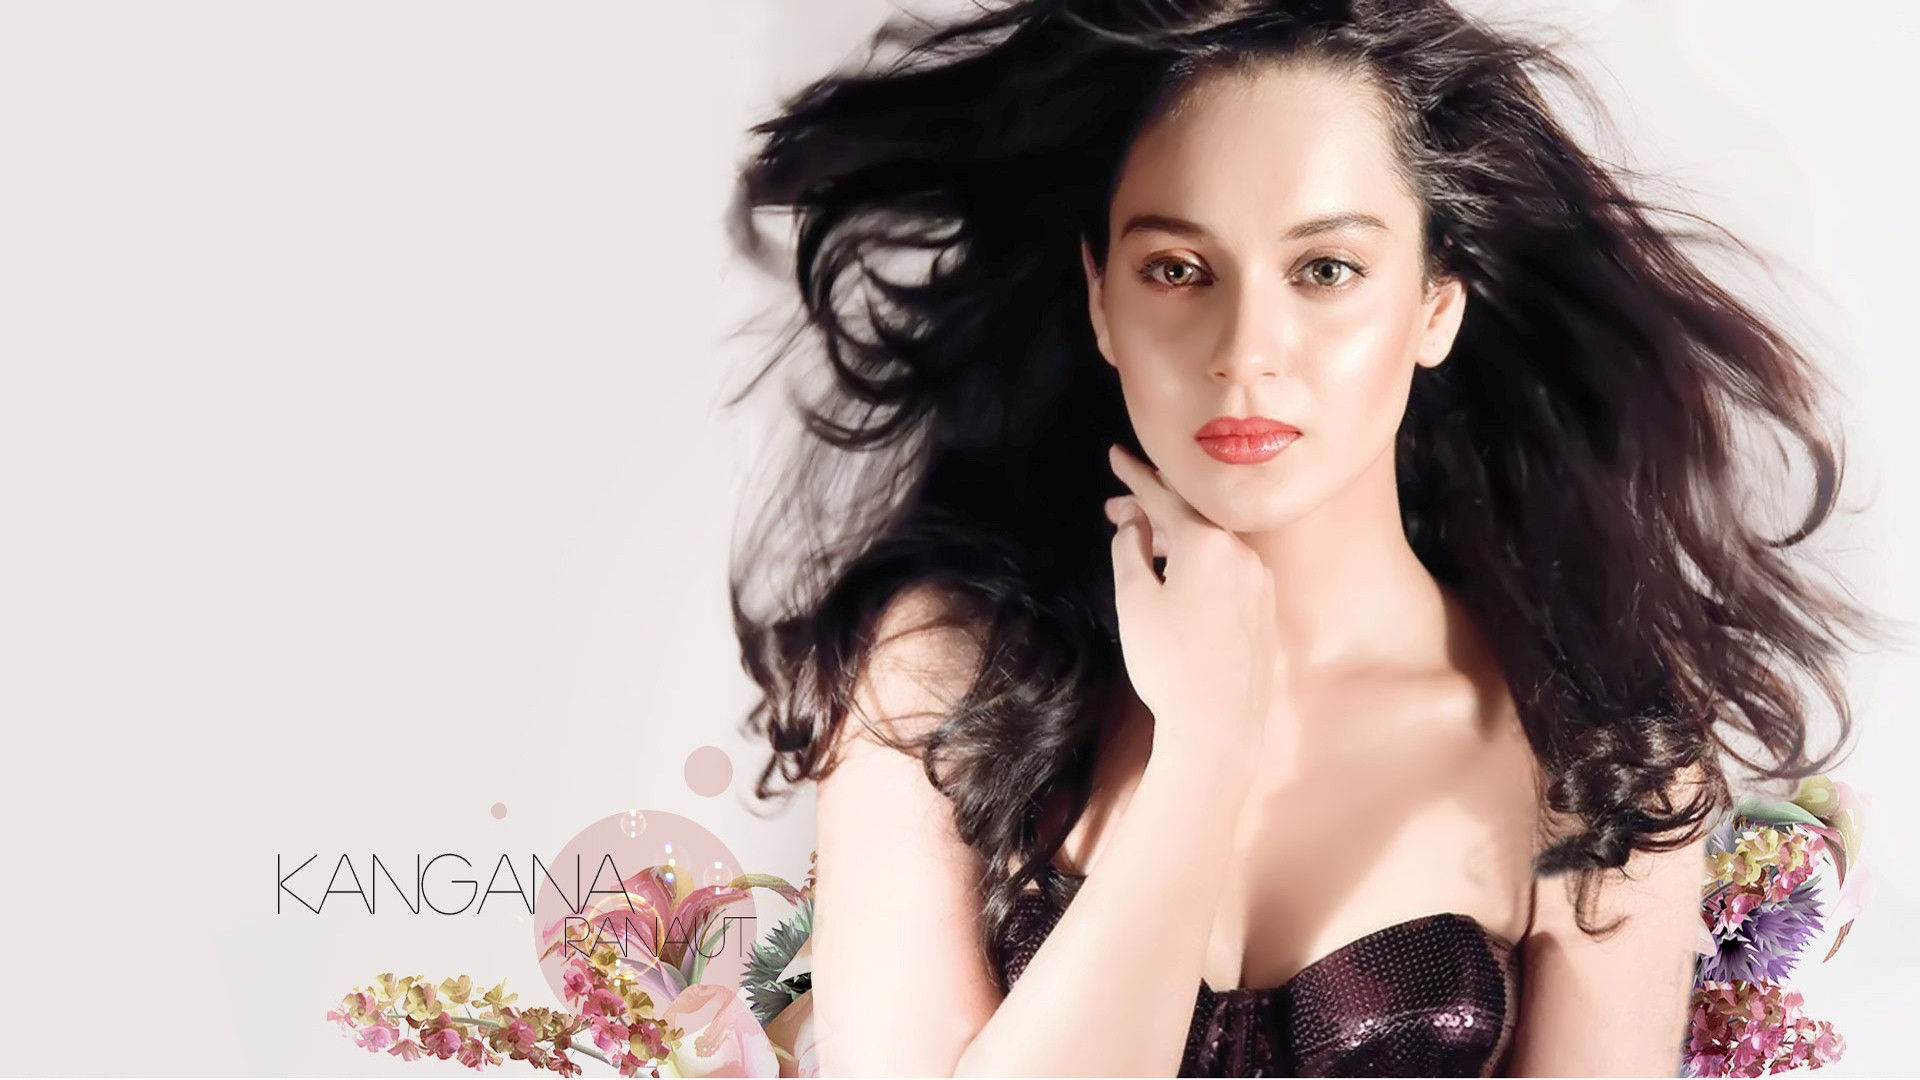 Kangana Ranaut Images Wallpapers